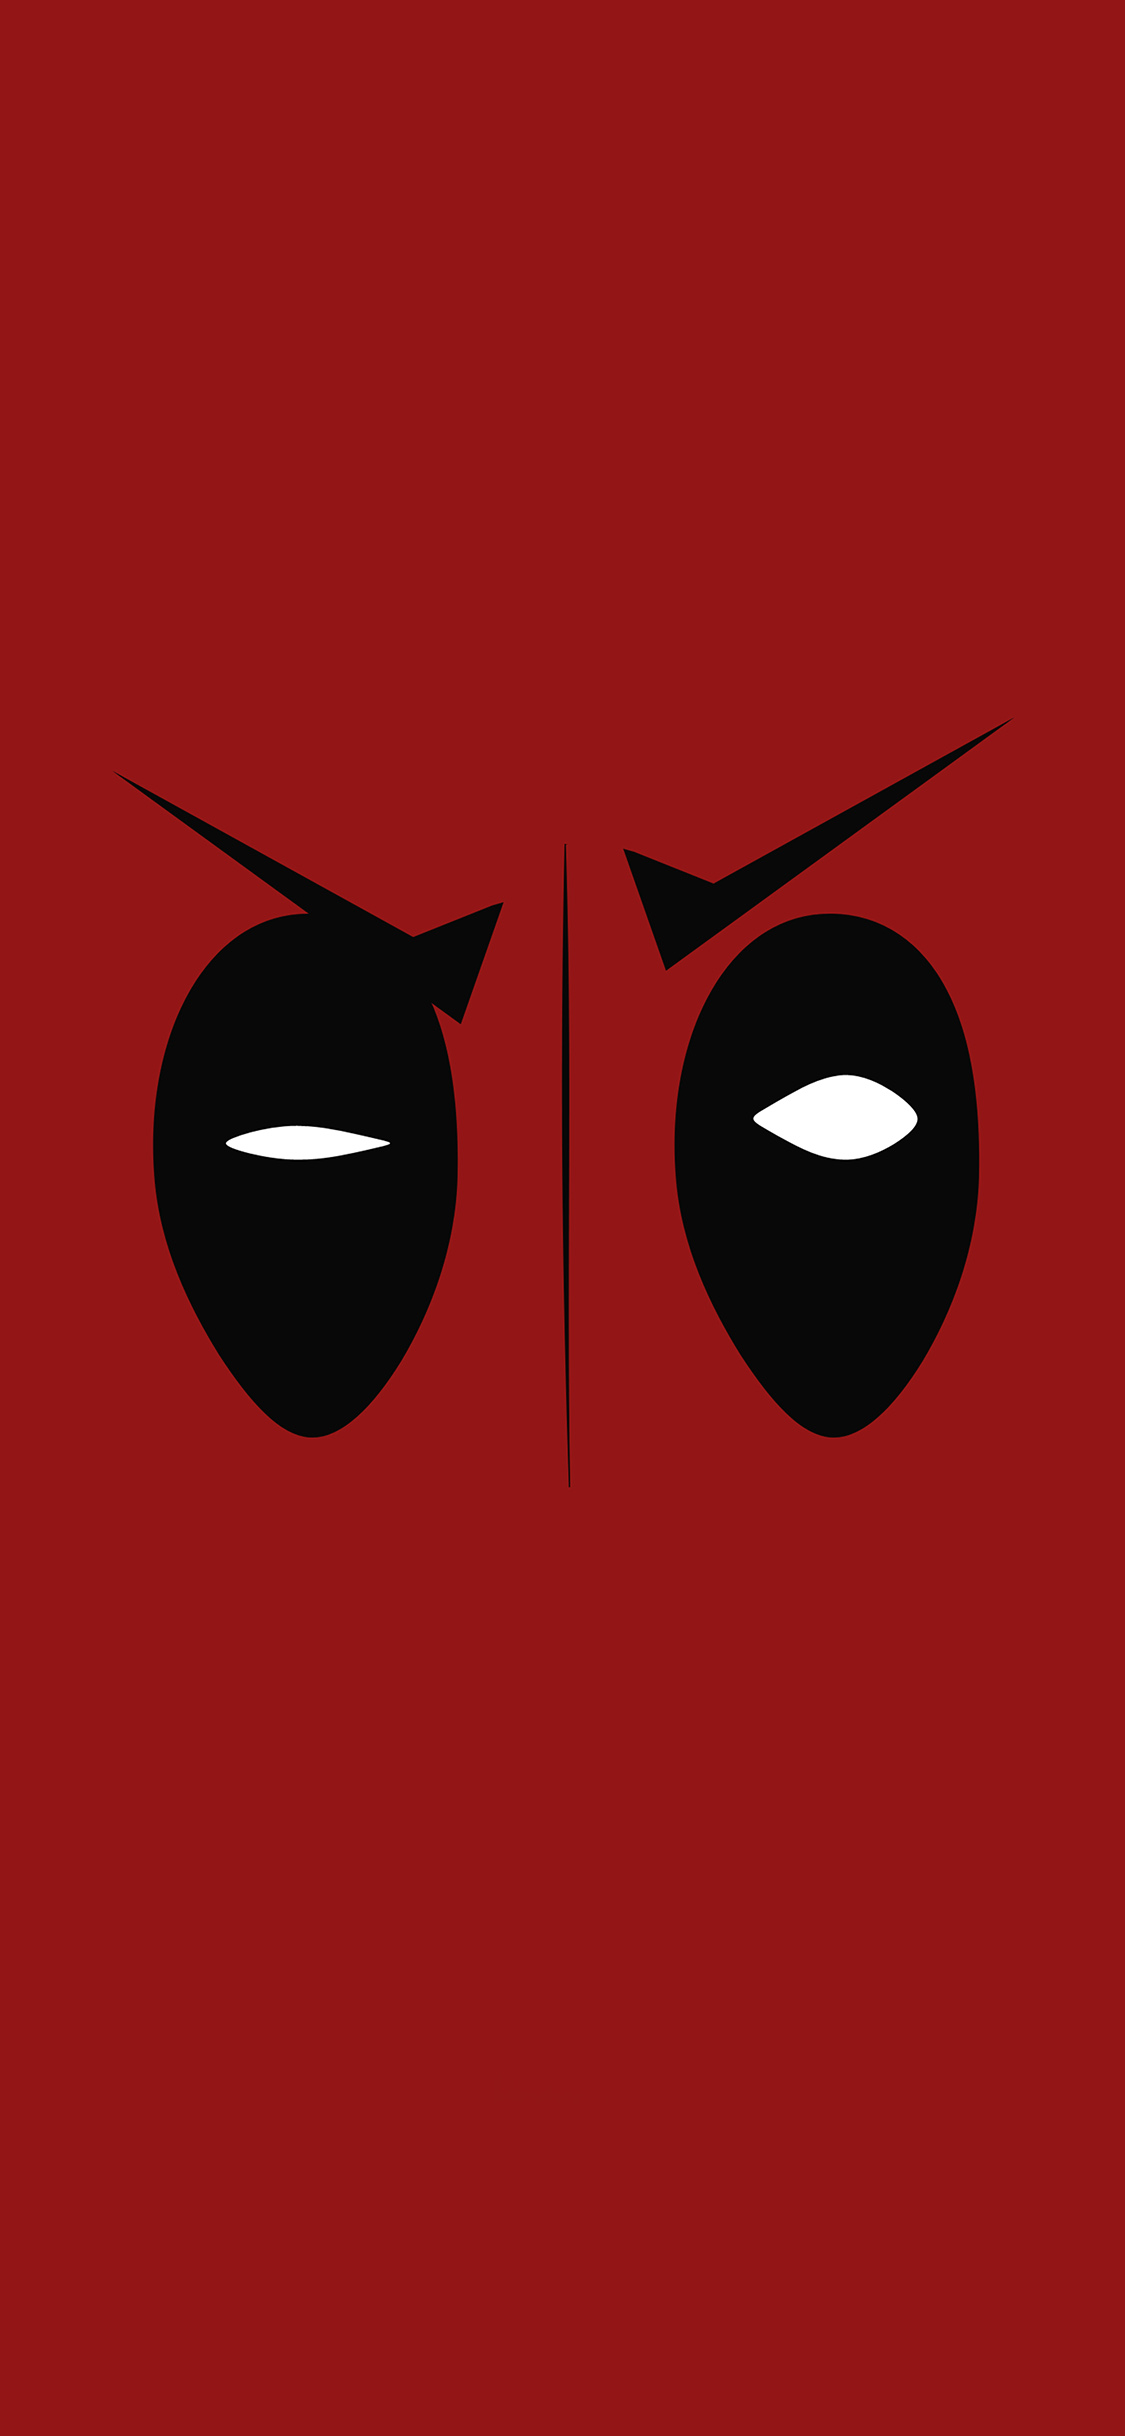 iPhoneXpapers.com-Apple-iPhone-wallpaper-ap59-deadpool-hero-eye-logo-art-film